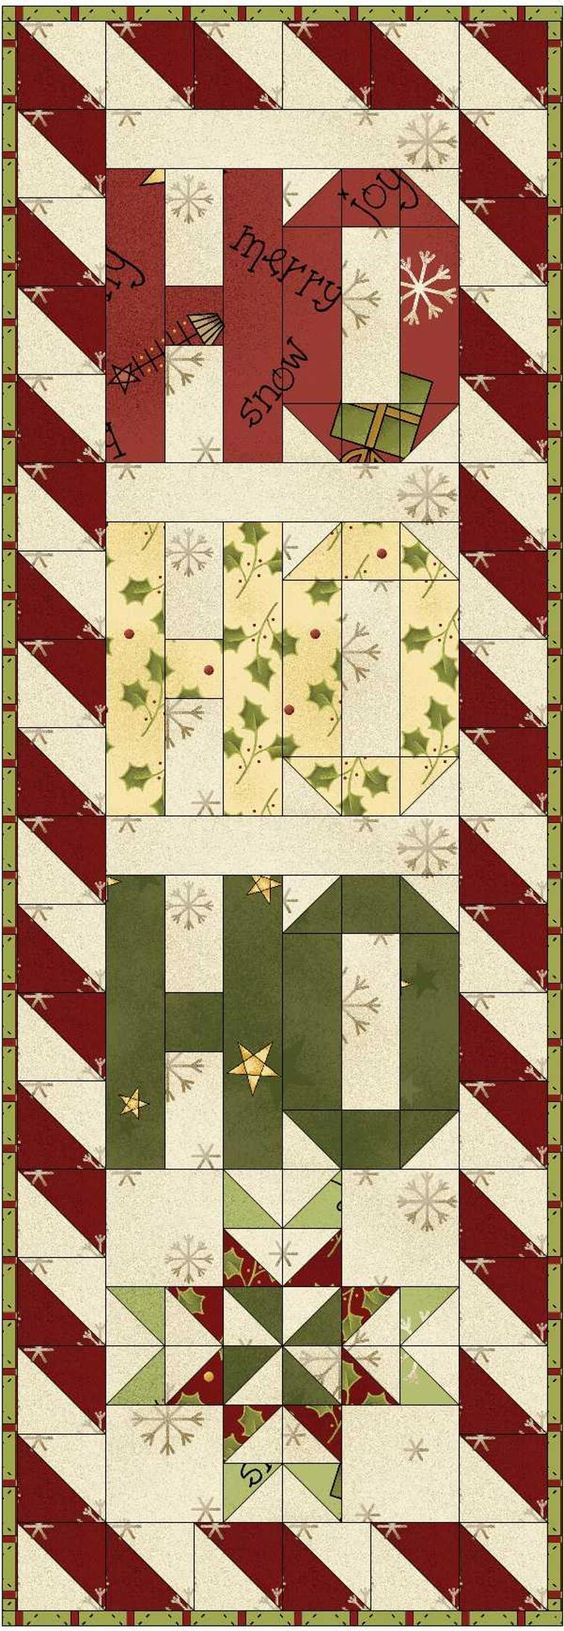 Free Quilt Pattern: Jolly Greeting